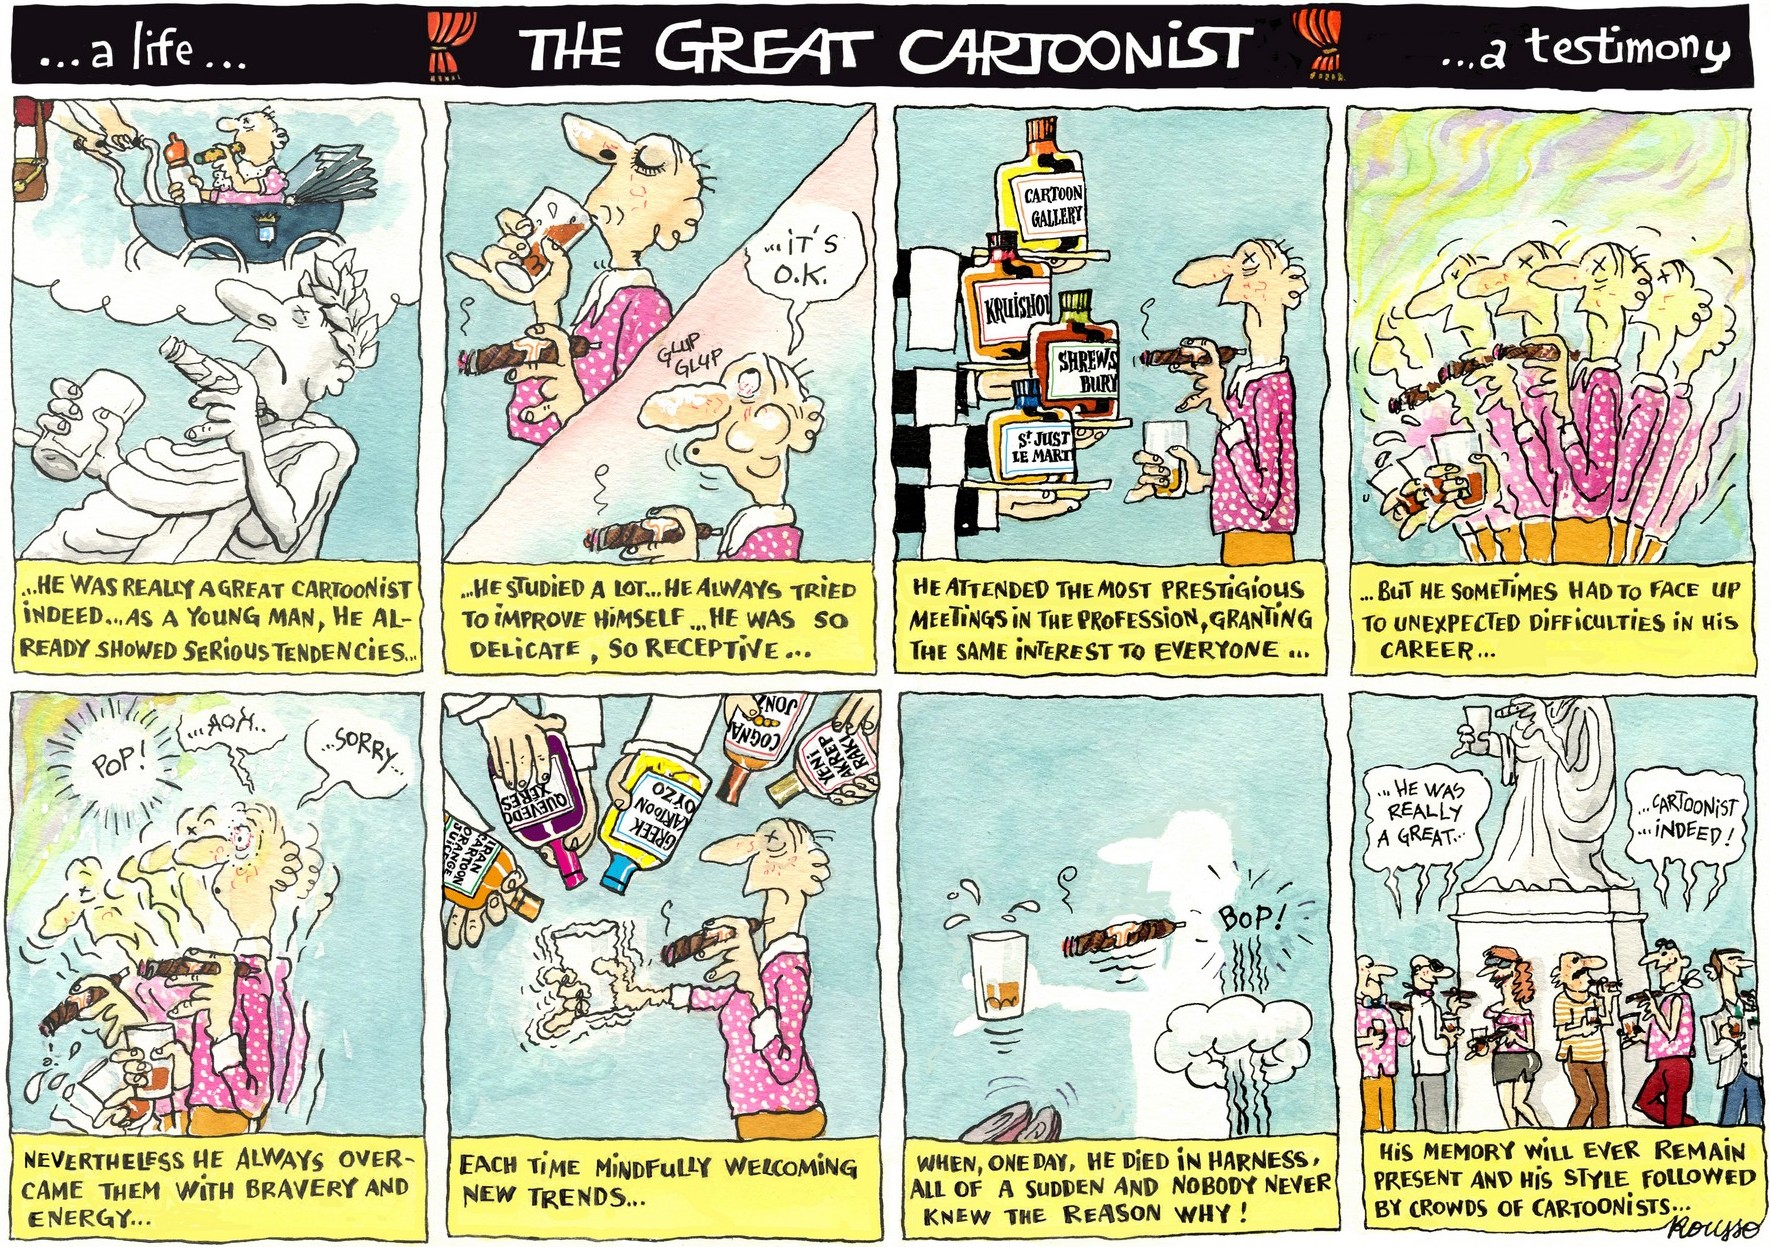 Robert Rousso-The Great Cartoonist